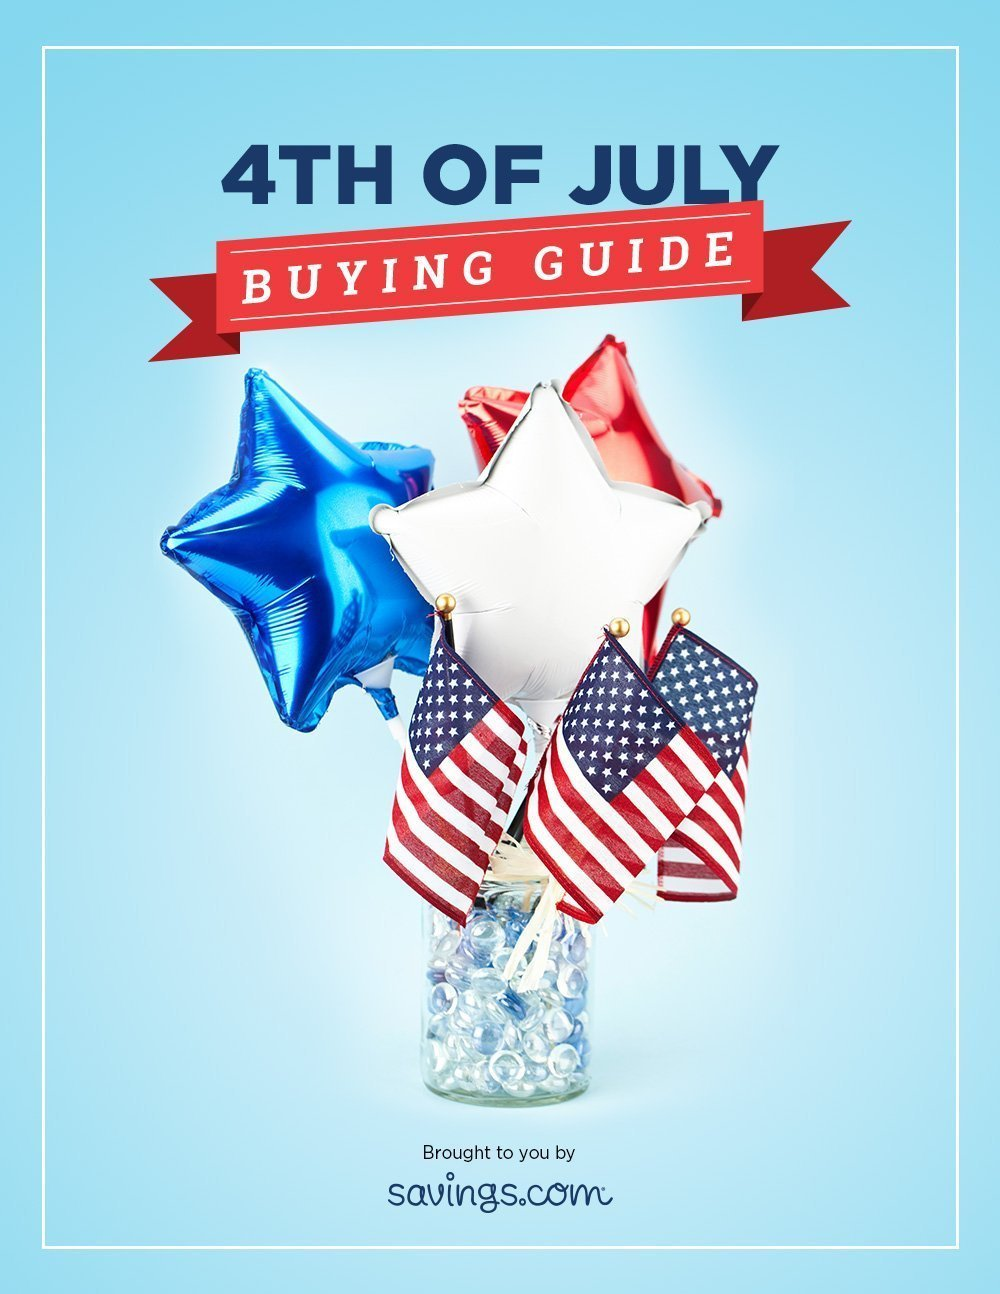 4thofjulybuyingguide - 3 Reasons why I love Fourth of July